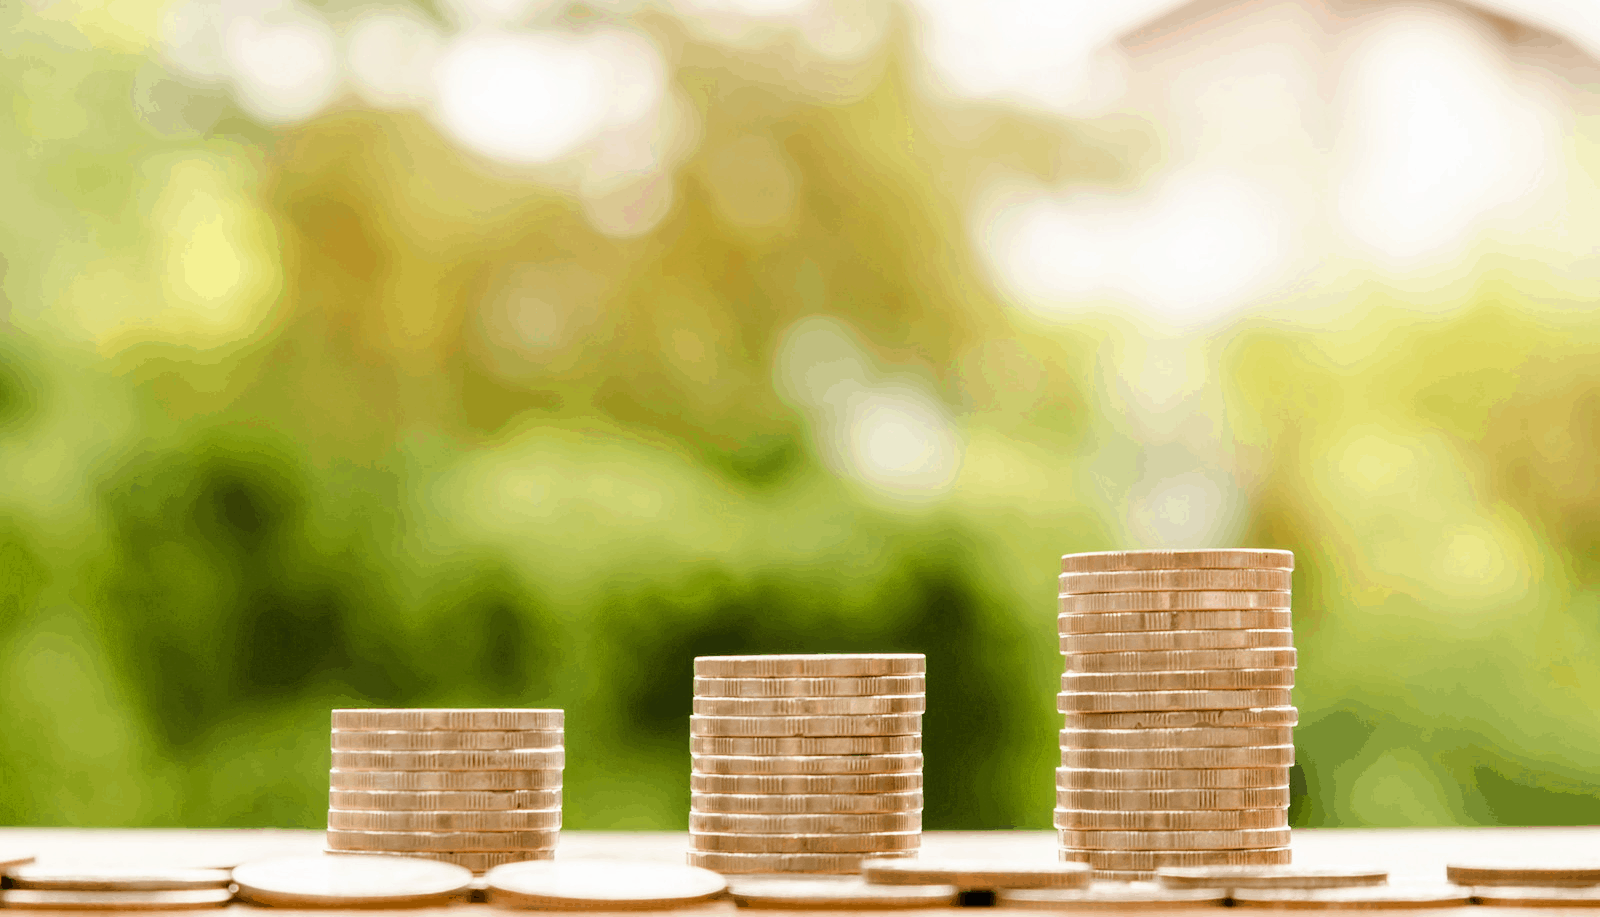 11 Best High Yield Savings Accounts (for 2020)